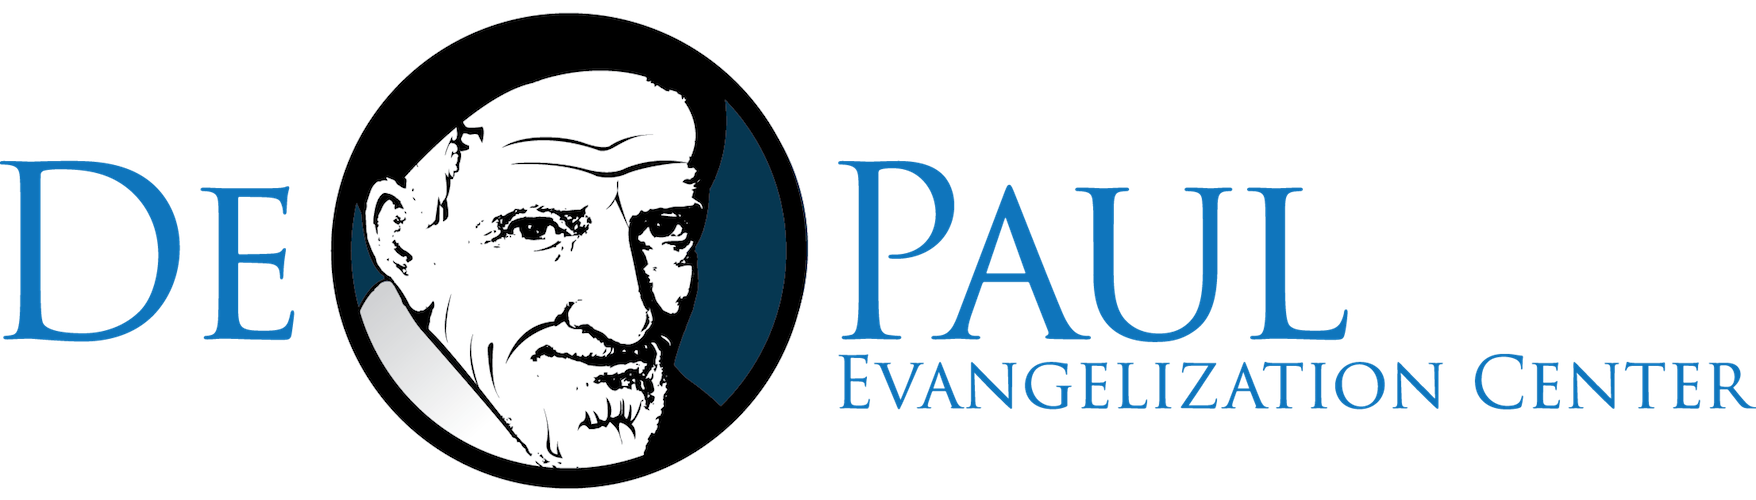 De Paul Evangelization Center